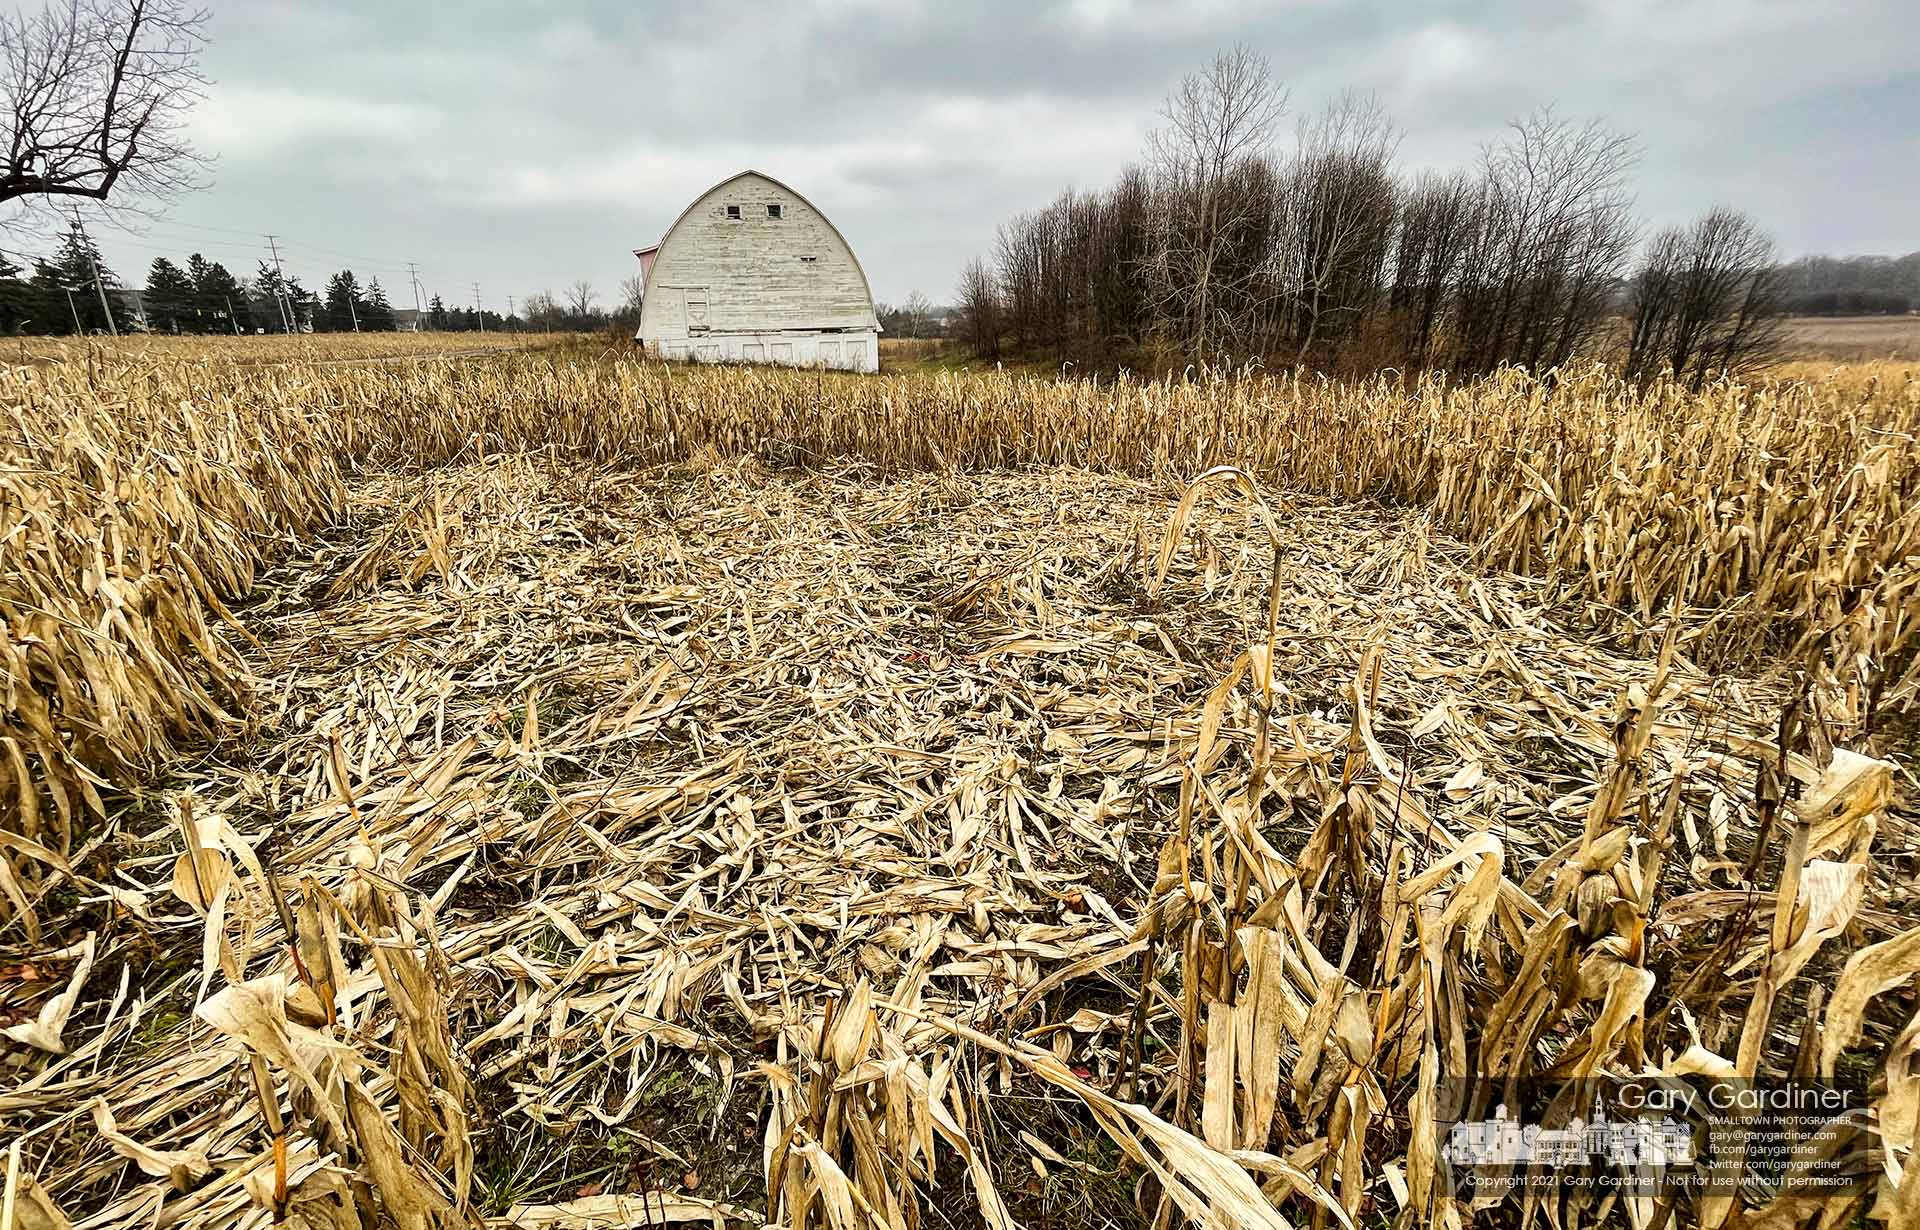 A section of corn lies flattened with the ears of corn picked clean by deer that roam the Braun Farm on Cleveland Ave. My Final Photo for Jan. 11, 2021.